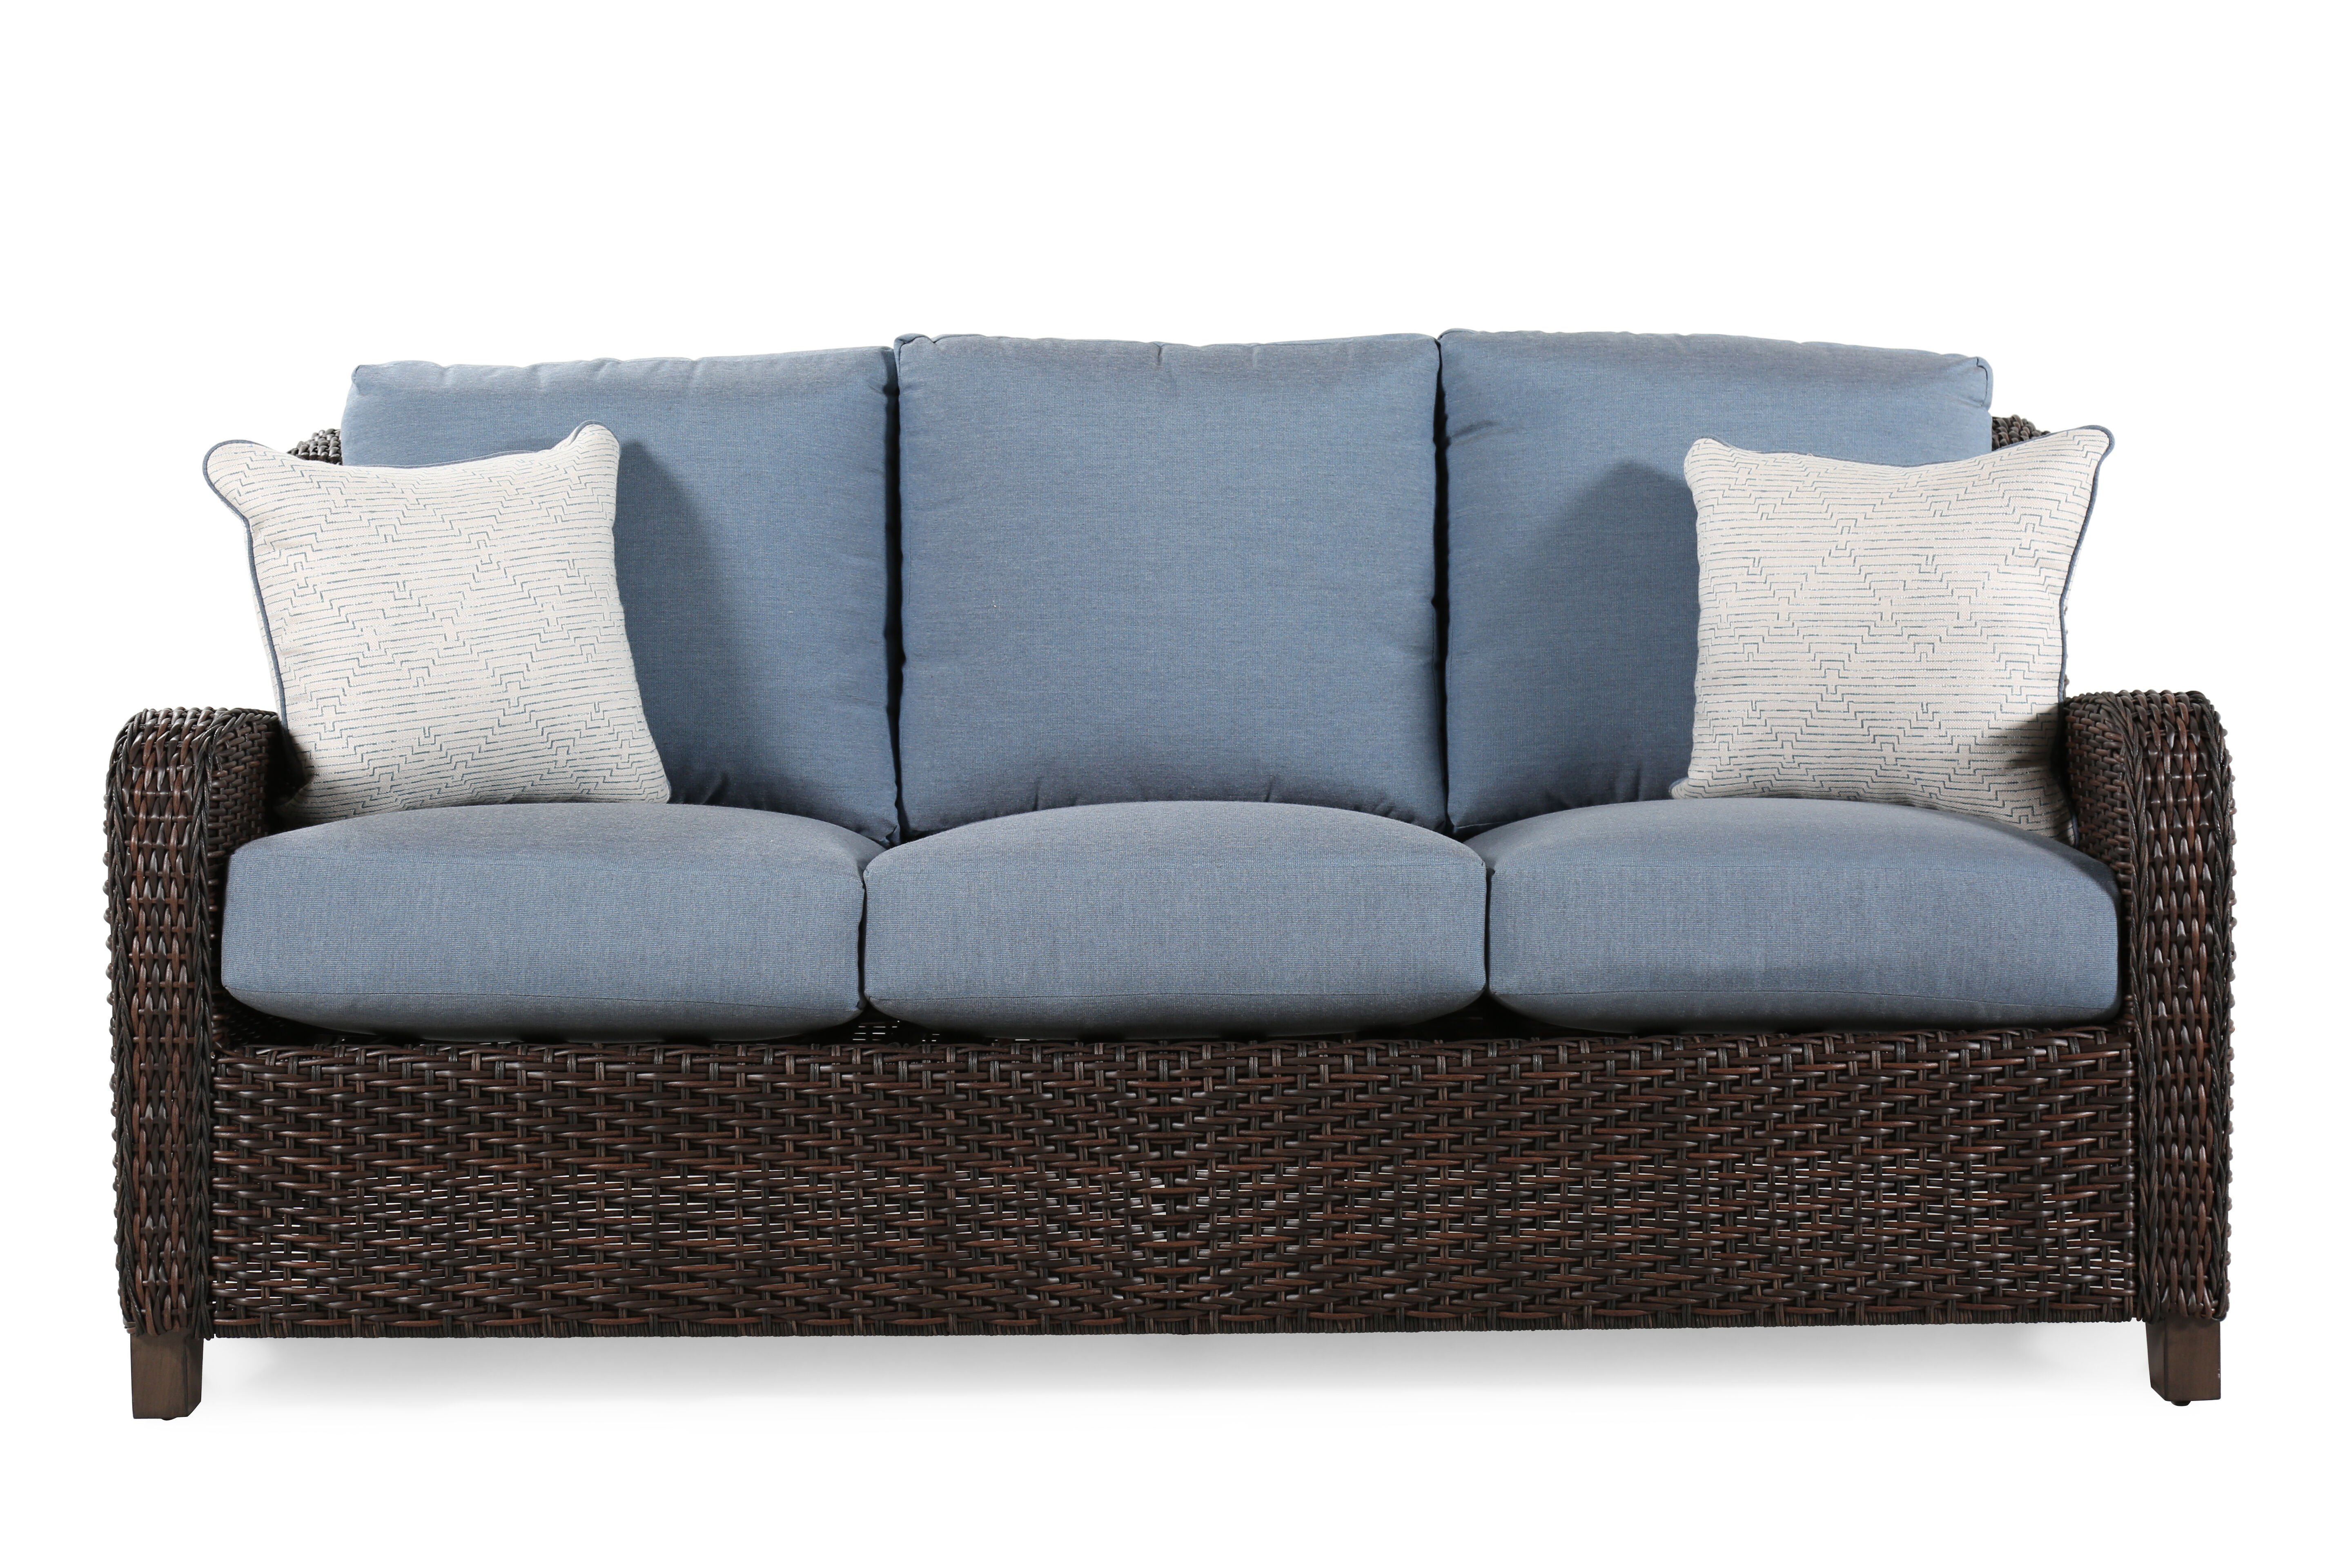 Lovely Images Water Resistant Contemporary Sofa In Slate Blue Water Resistant Contemporary  Sofa In Slate Blue